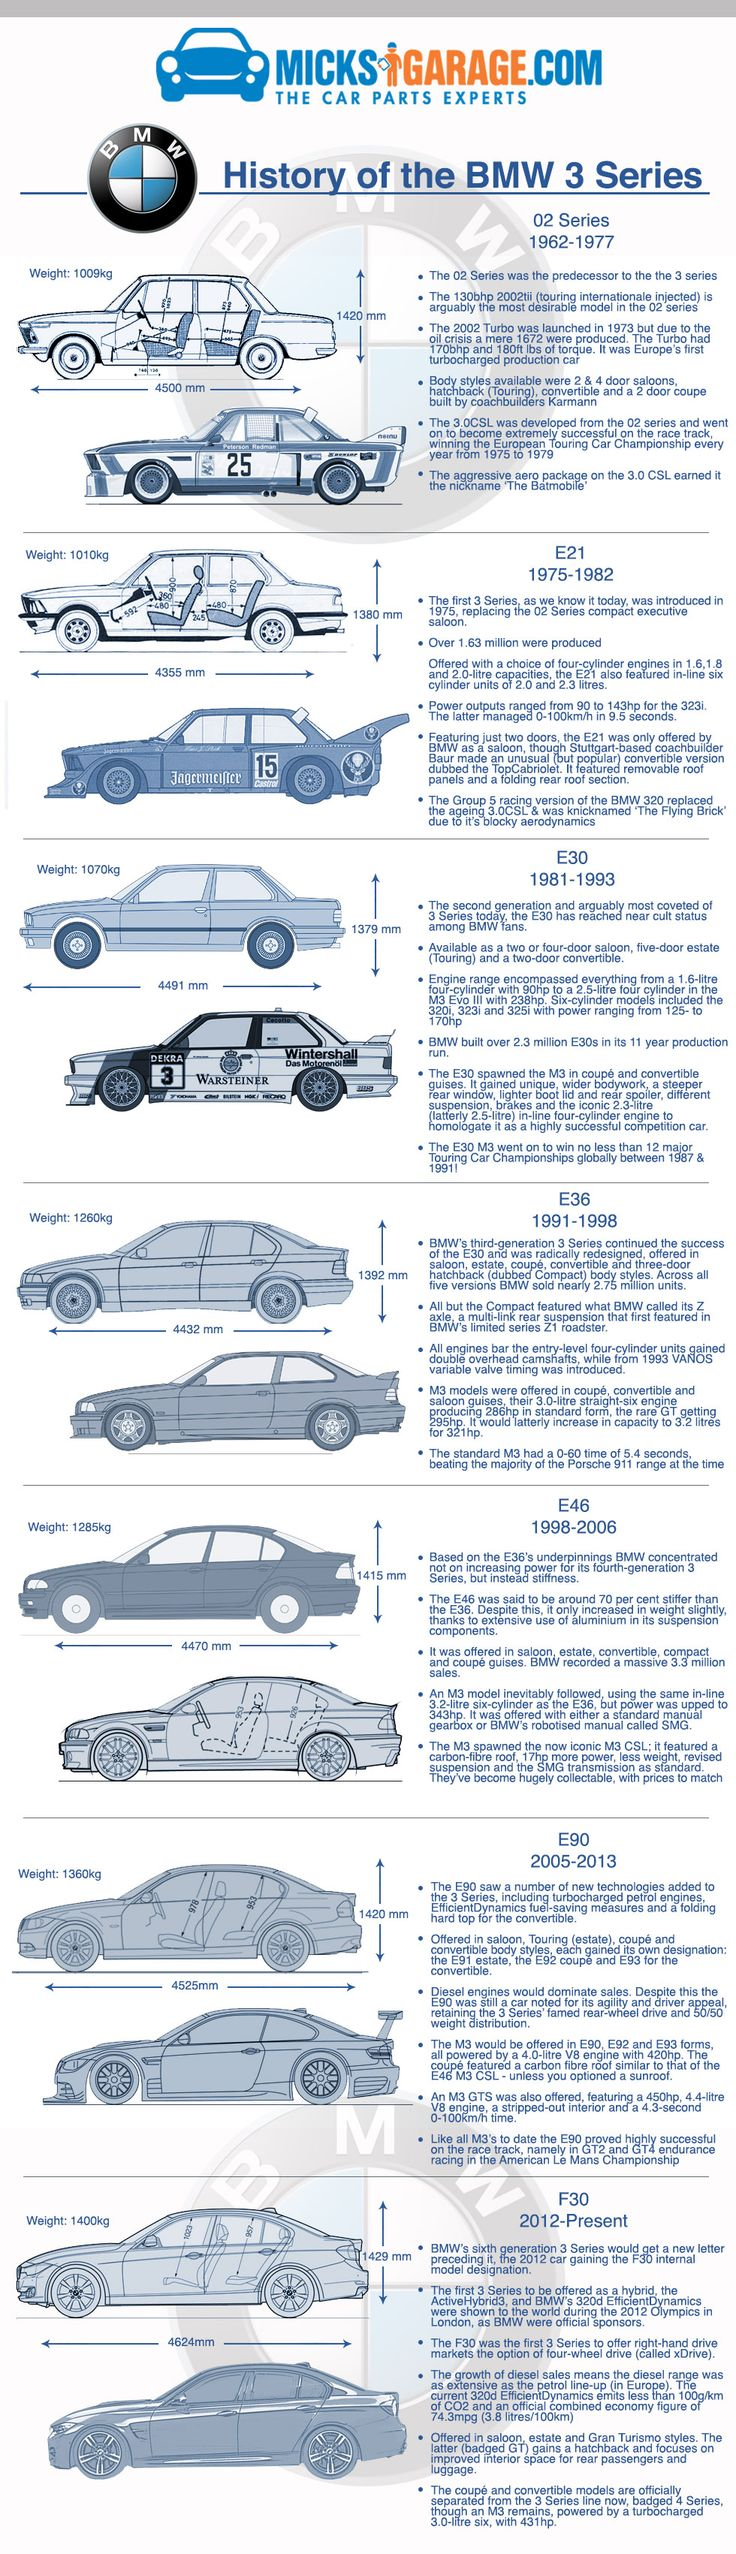 History of the BMW 3 series ✏✏✏✏✏✏✏✏✏✏✏✏✏✏✏✏ IDEE CADEAU / CUTE GIFT IDEA ☞ http://gabyfeeriefr.tumblr.com/archive ✏✏✏✏✏✏✏✏✏✏✏✏✏✏✏✏